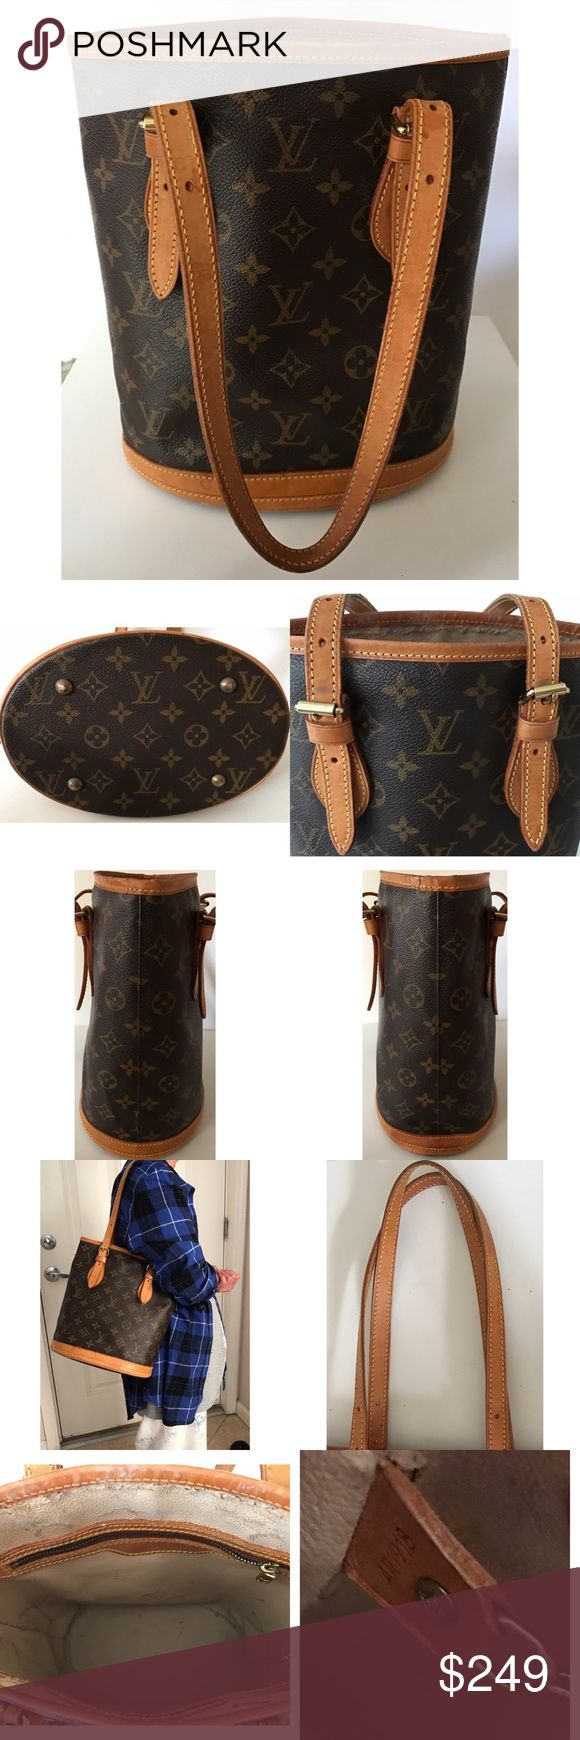 """💯Authentic Louis Vuitton Monogram Bucket PM Bag Authentic Louis Vuitton Bucket PM shoulder bag. Size L 8.7"""" x H 10"""" x D 6.0"""", adjustable strap 5.8-9.2"""". Date code AR1918. Monogram leather has normal signs of use, minor scuffs and dirt marks. Vachetta leather trim and handles have creases, dark spots, and dirt marks. Interior has dirt/pen marks and peeling mostly at the top of main compartment (see pics closely). Has 1 clip chain attached, 1 pocket, 1 zipper pocket, made in France. Retail…"""